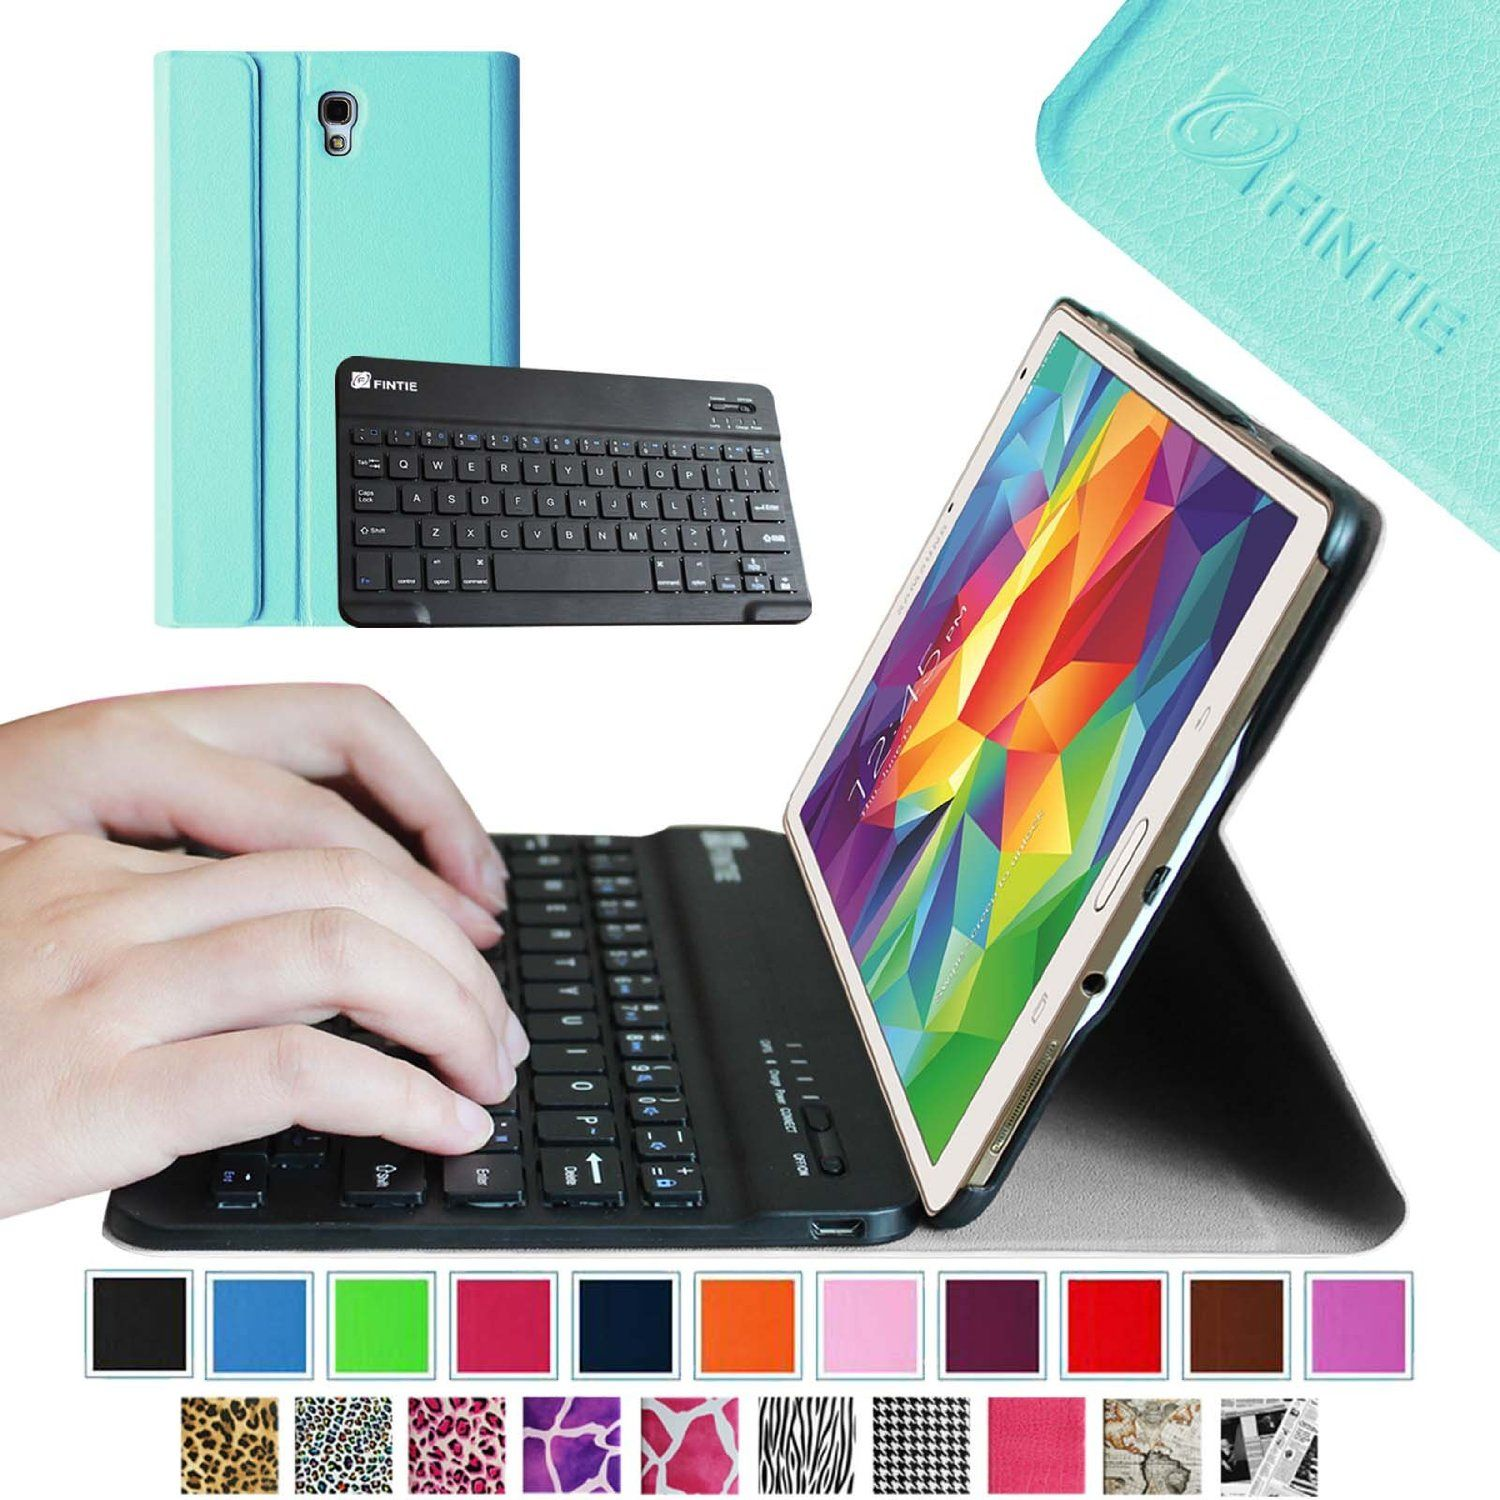 c64228f8465 Amazon.com: Fintie Blade X1 Samsung Galaxy Tab 4 8.0 Keyboard Case Cover -  Ultra Slim Smart Shell Light Weight Stand with Magnetically Detachable  Wireless ...